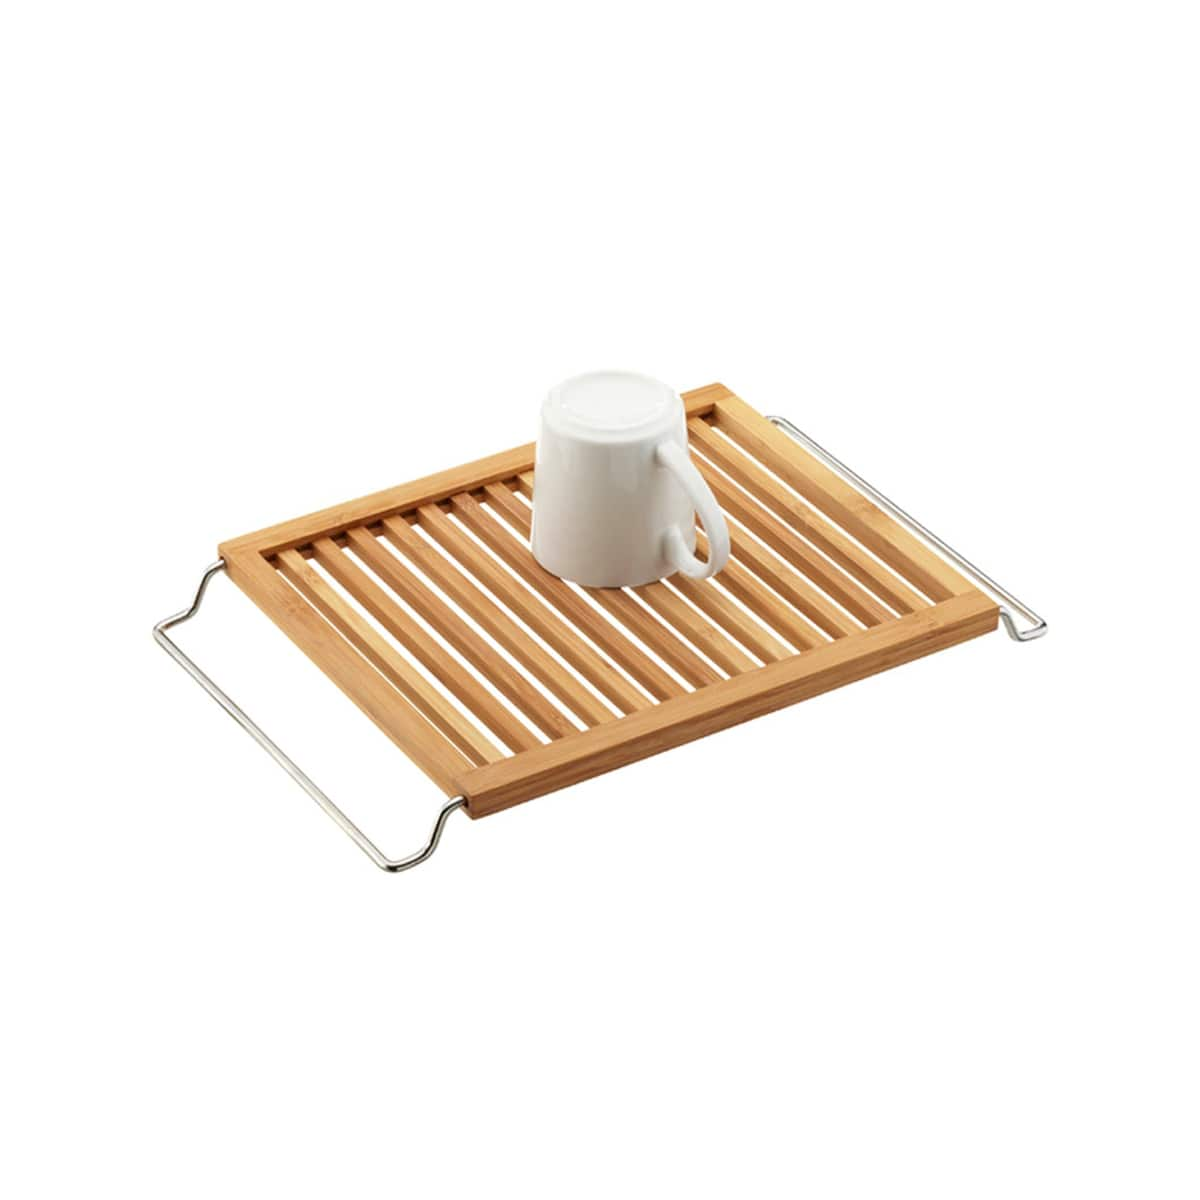 10 Dish Drying Racks That Are Better than a Tea Towel: gallery image 4